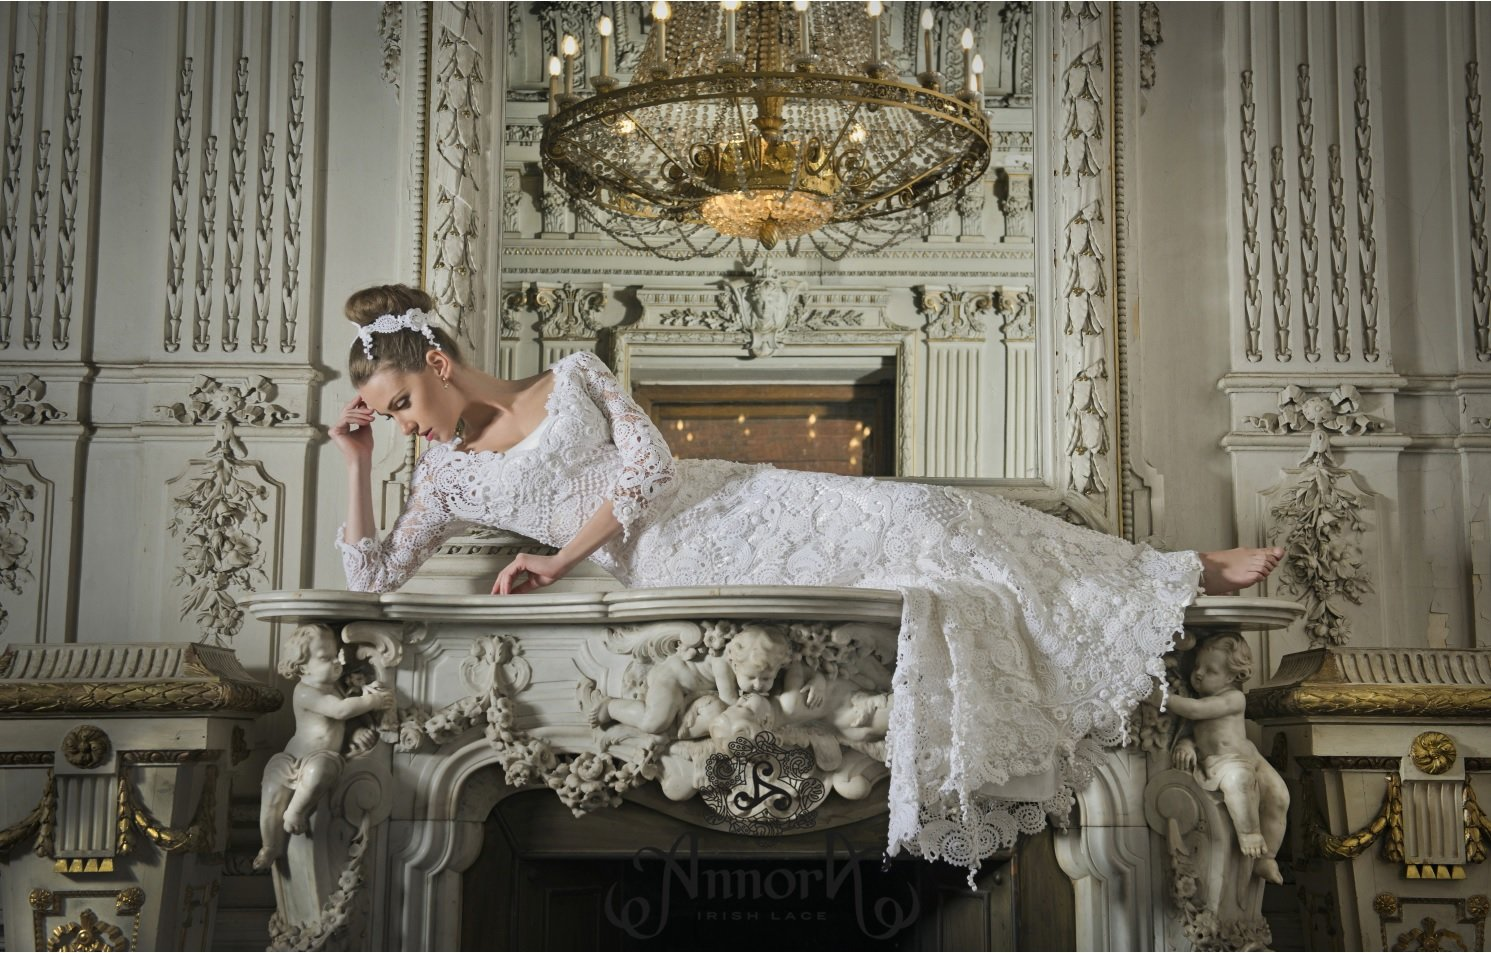 Annora Irish Lace collection: wedding dress made of handcrafted Irish Lace